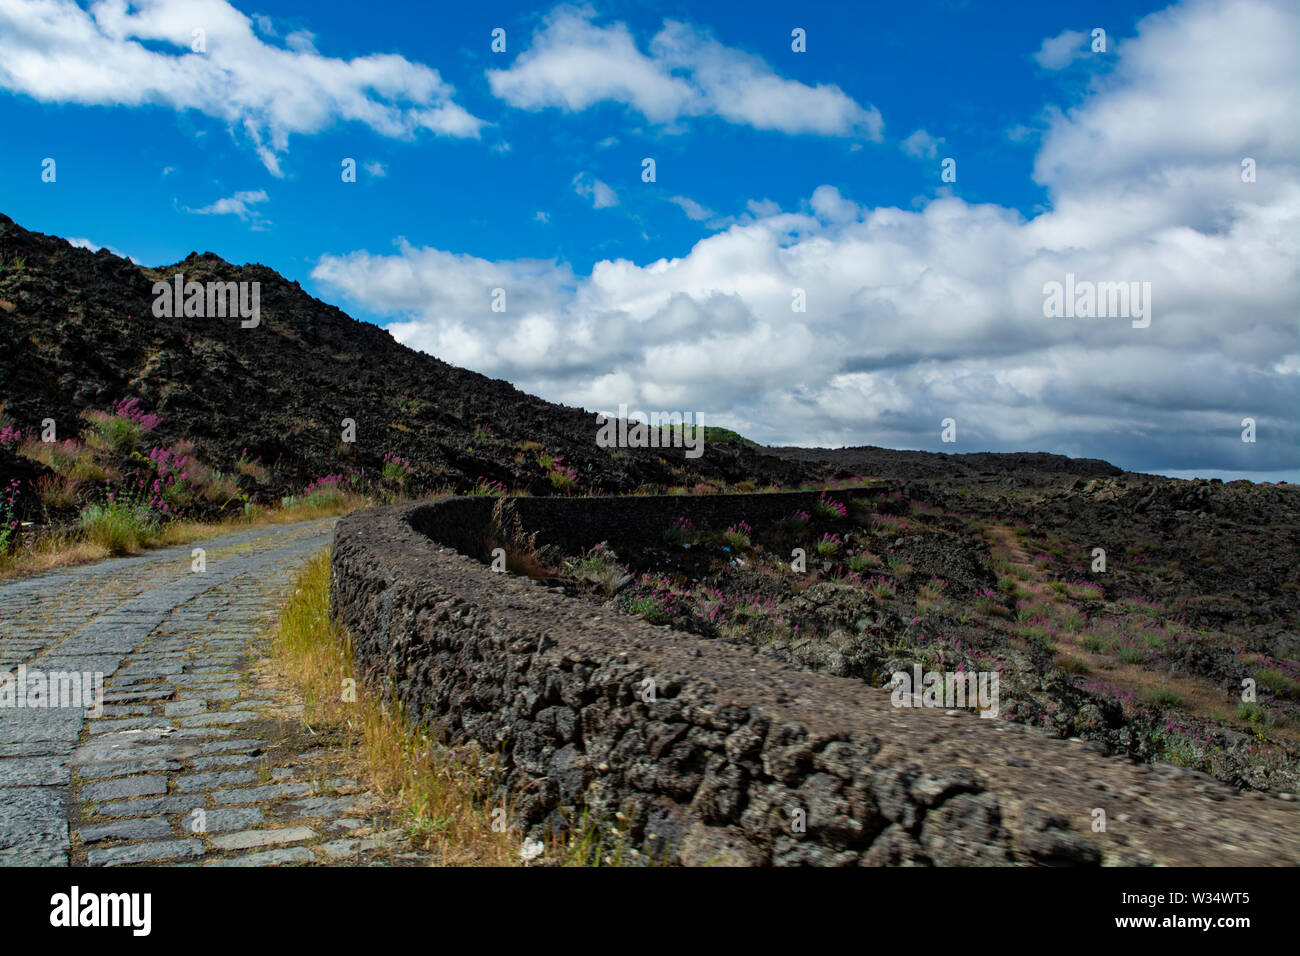 Stone road through black lava fields on slopes of Mount Etna volcano, car access to National Park of Etna, Sicily island, Italy, travel destination - Stock Image